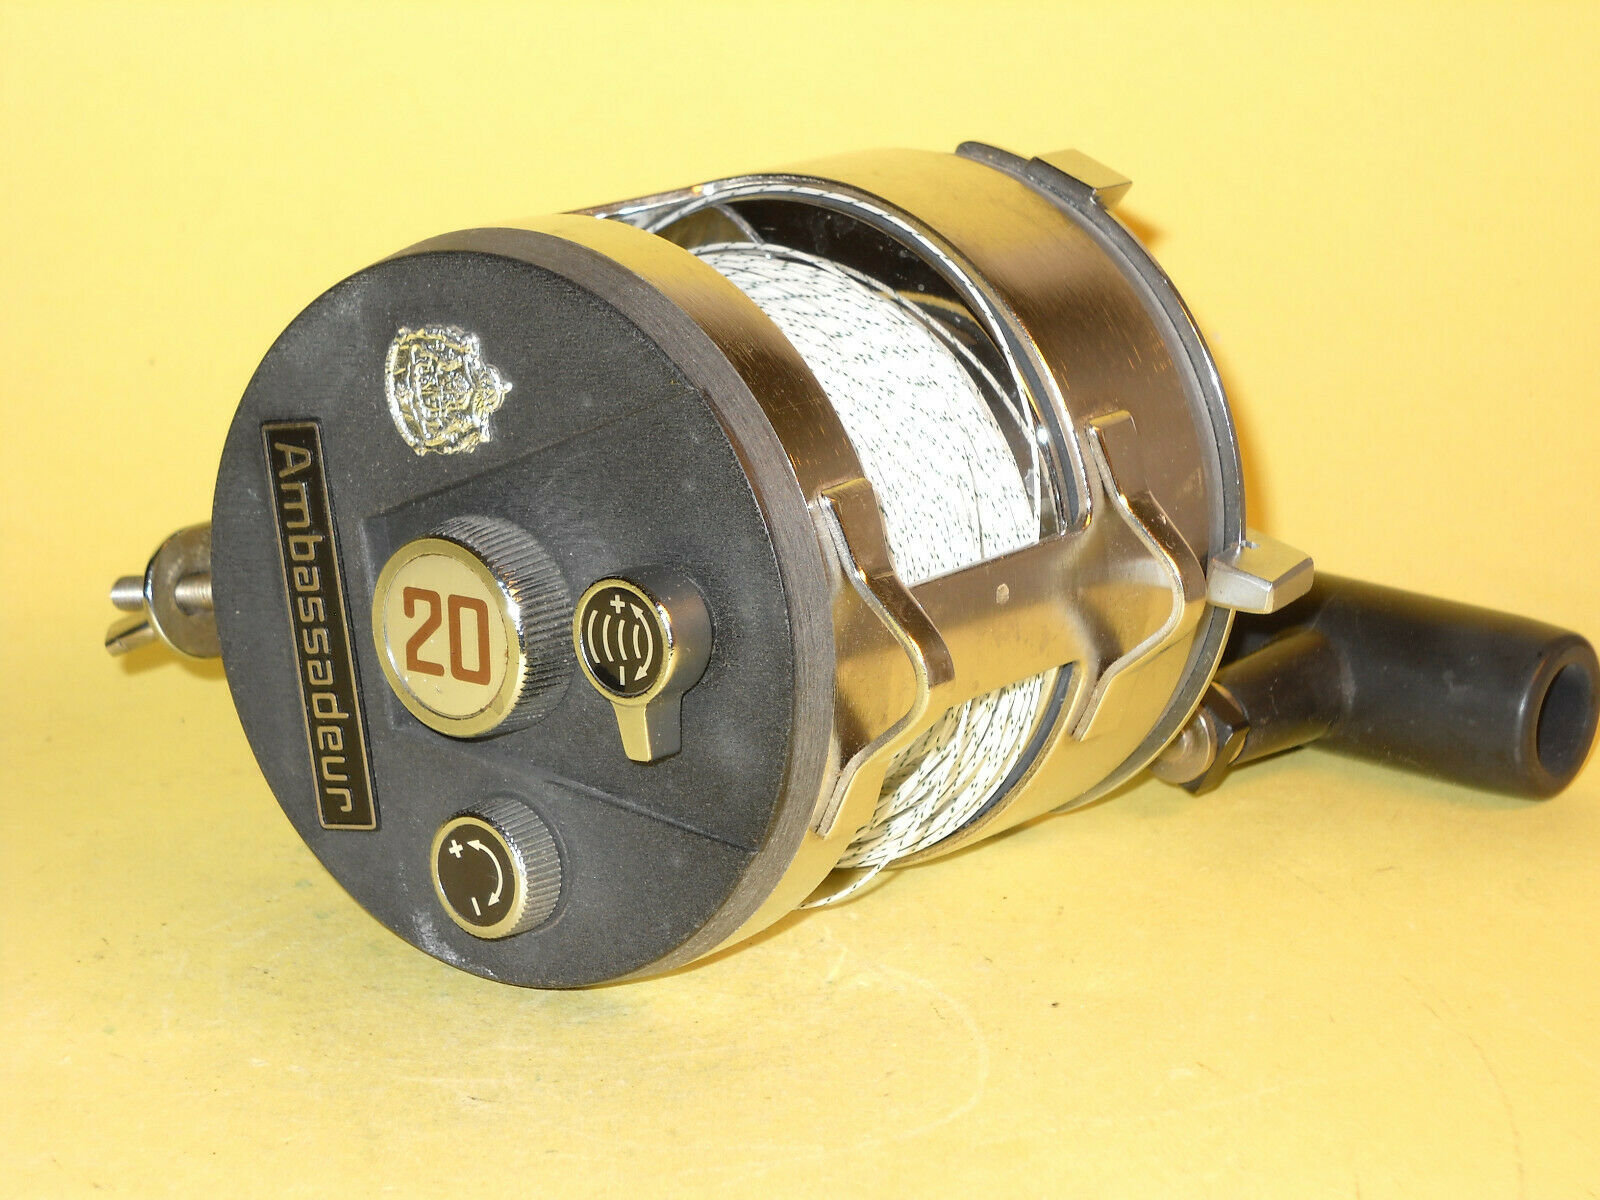 ABU  Ambassadeur 20 - a Vintage Big Reel in extremely good condition   no minimum